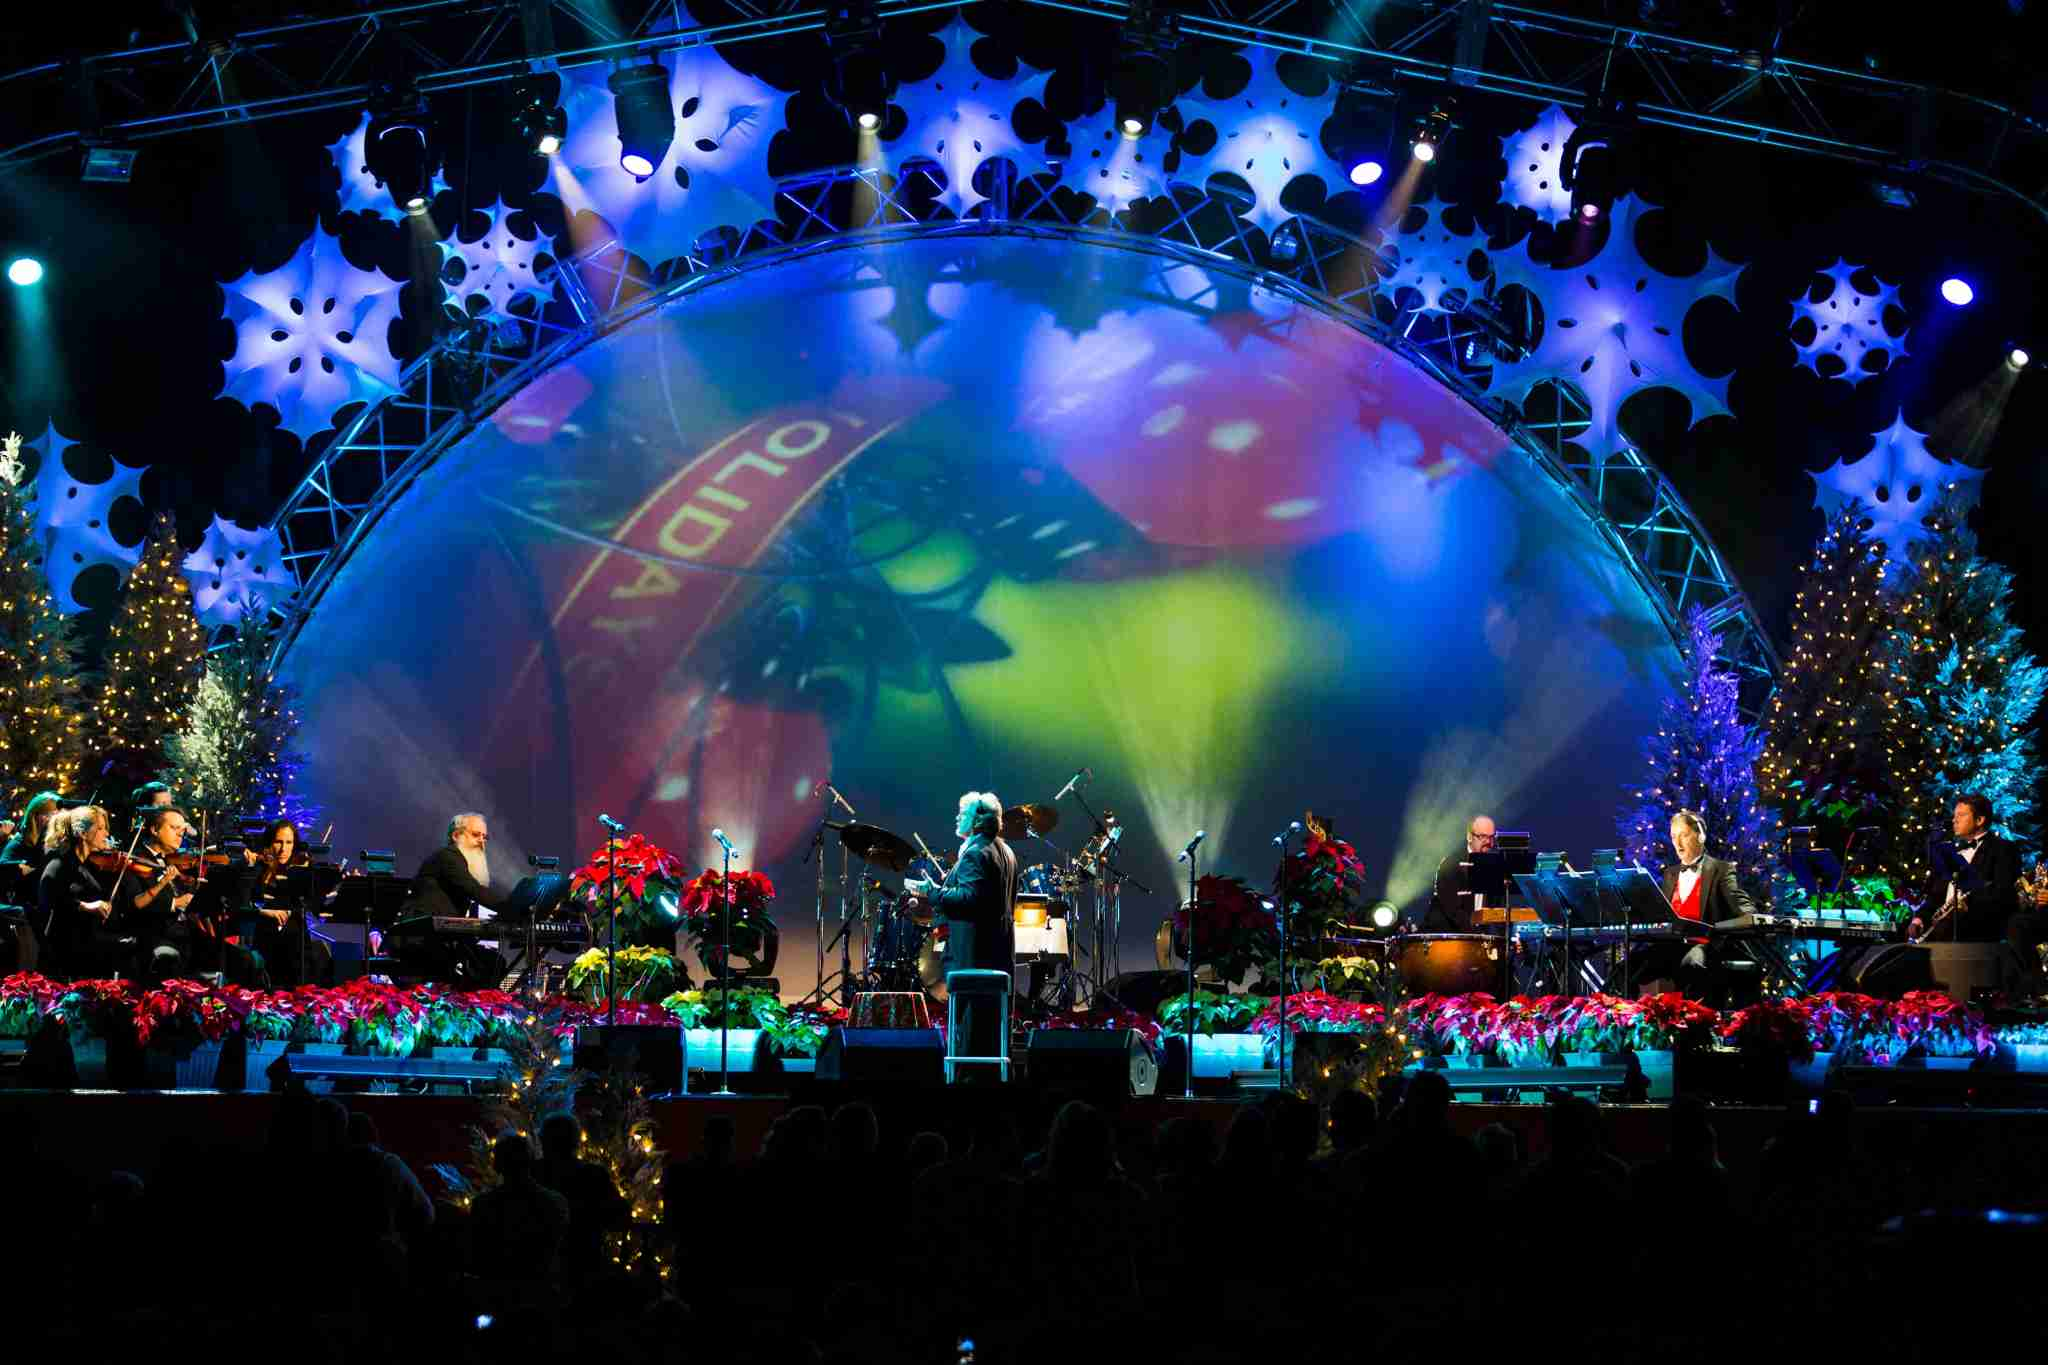 Mannheim Steamroller will play 10 holiday concerts at Universal Orlando in 2019. (Photo courtesy of Universal Orlando)